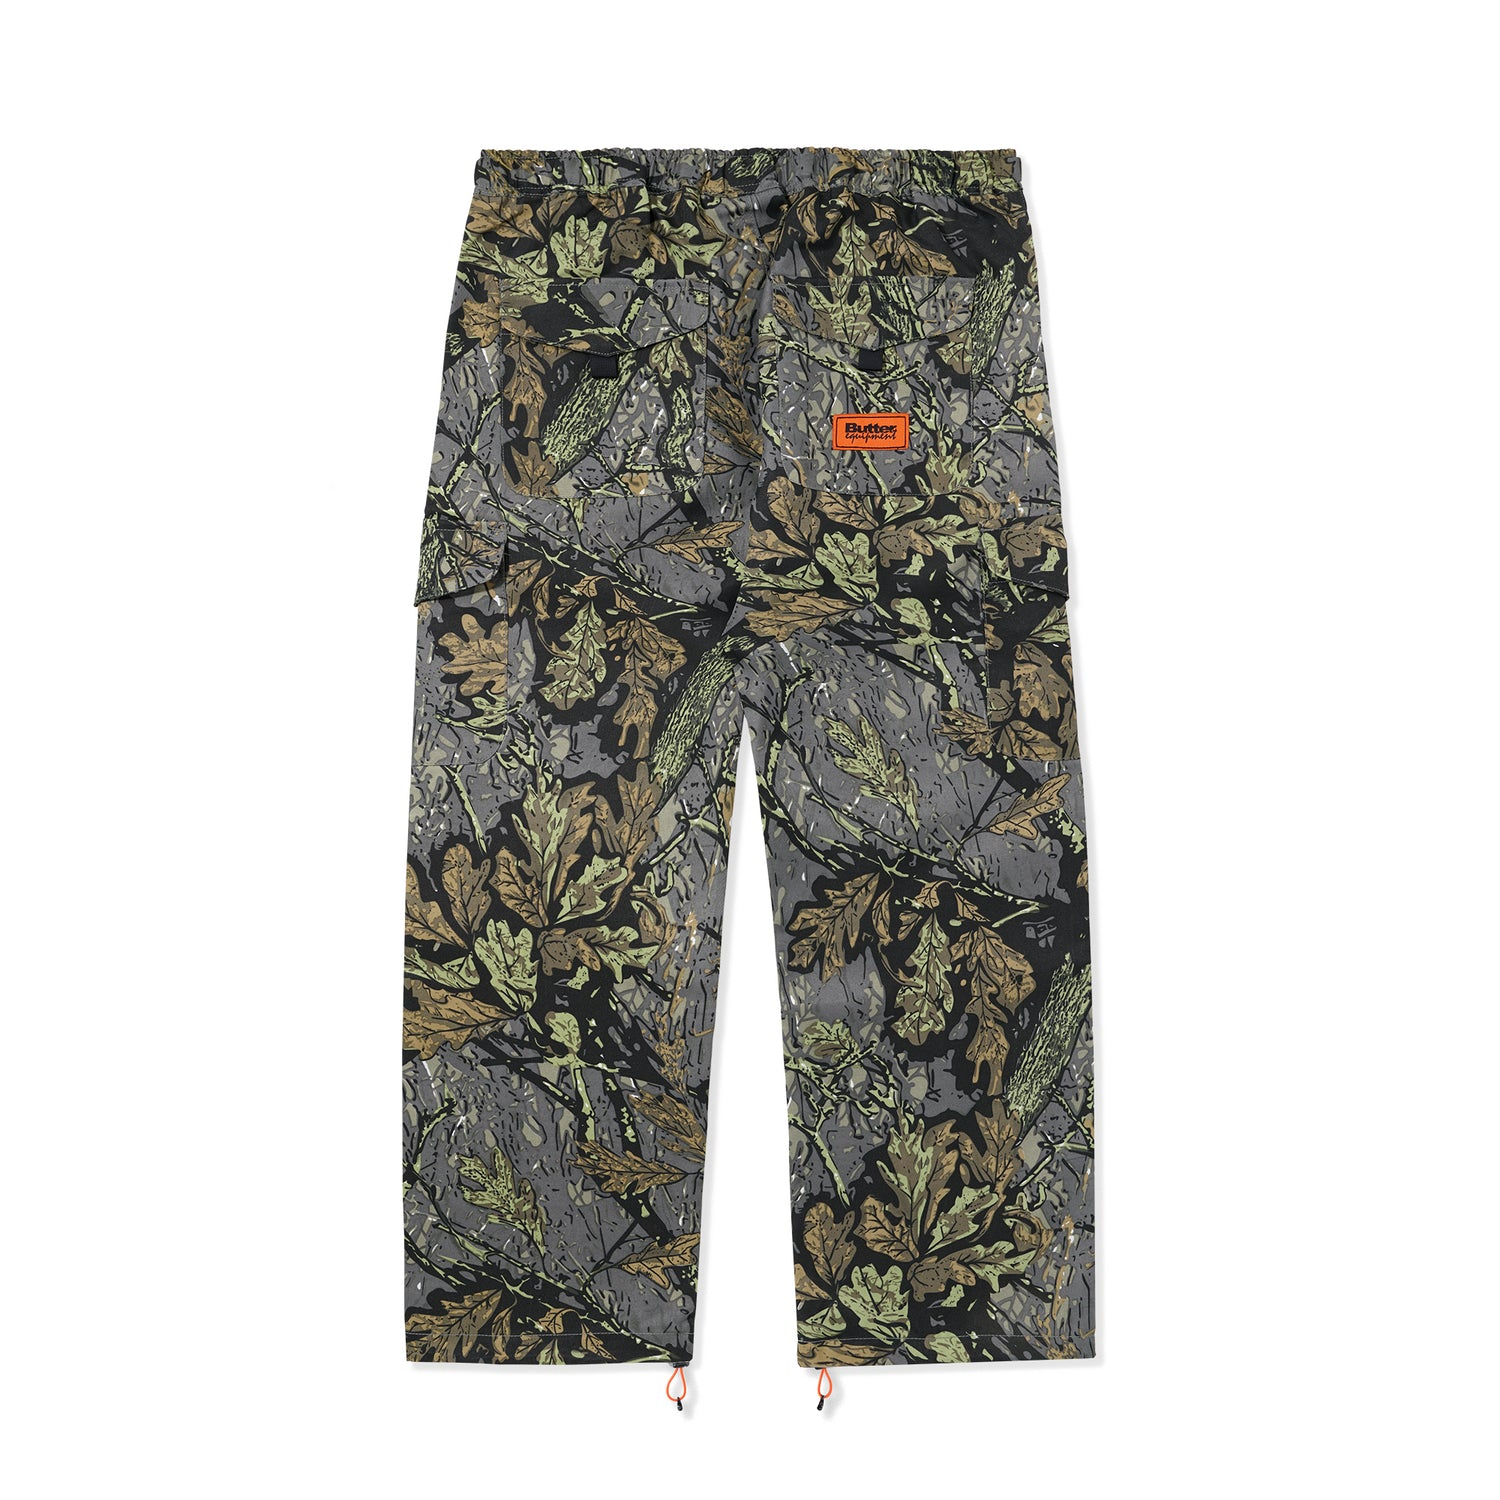 Equipment Cargo Pants, Leaf Camo